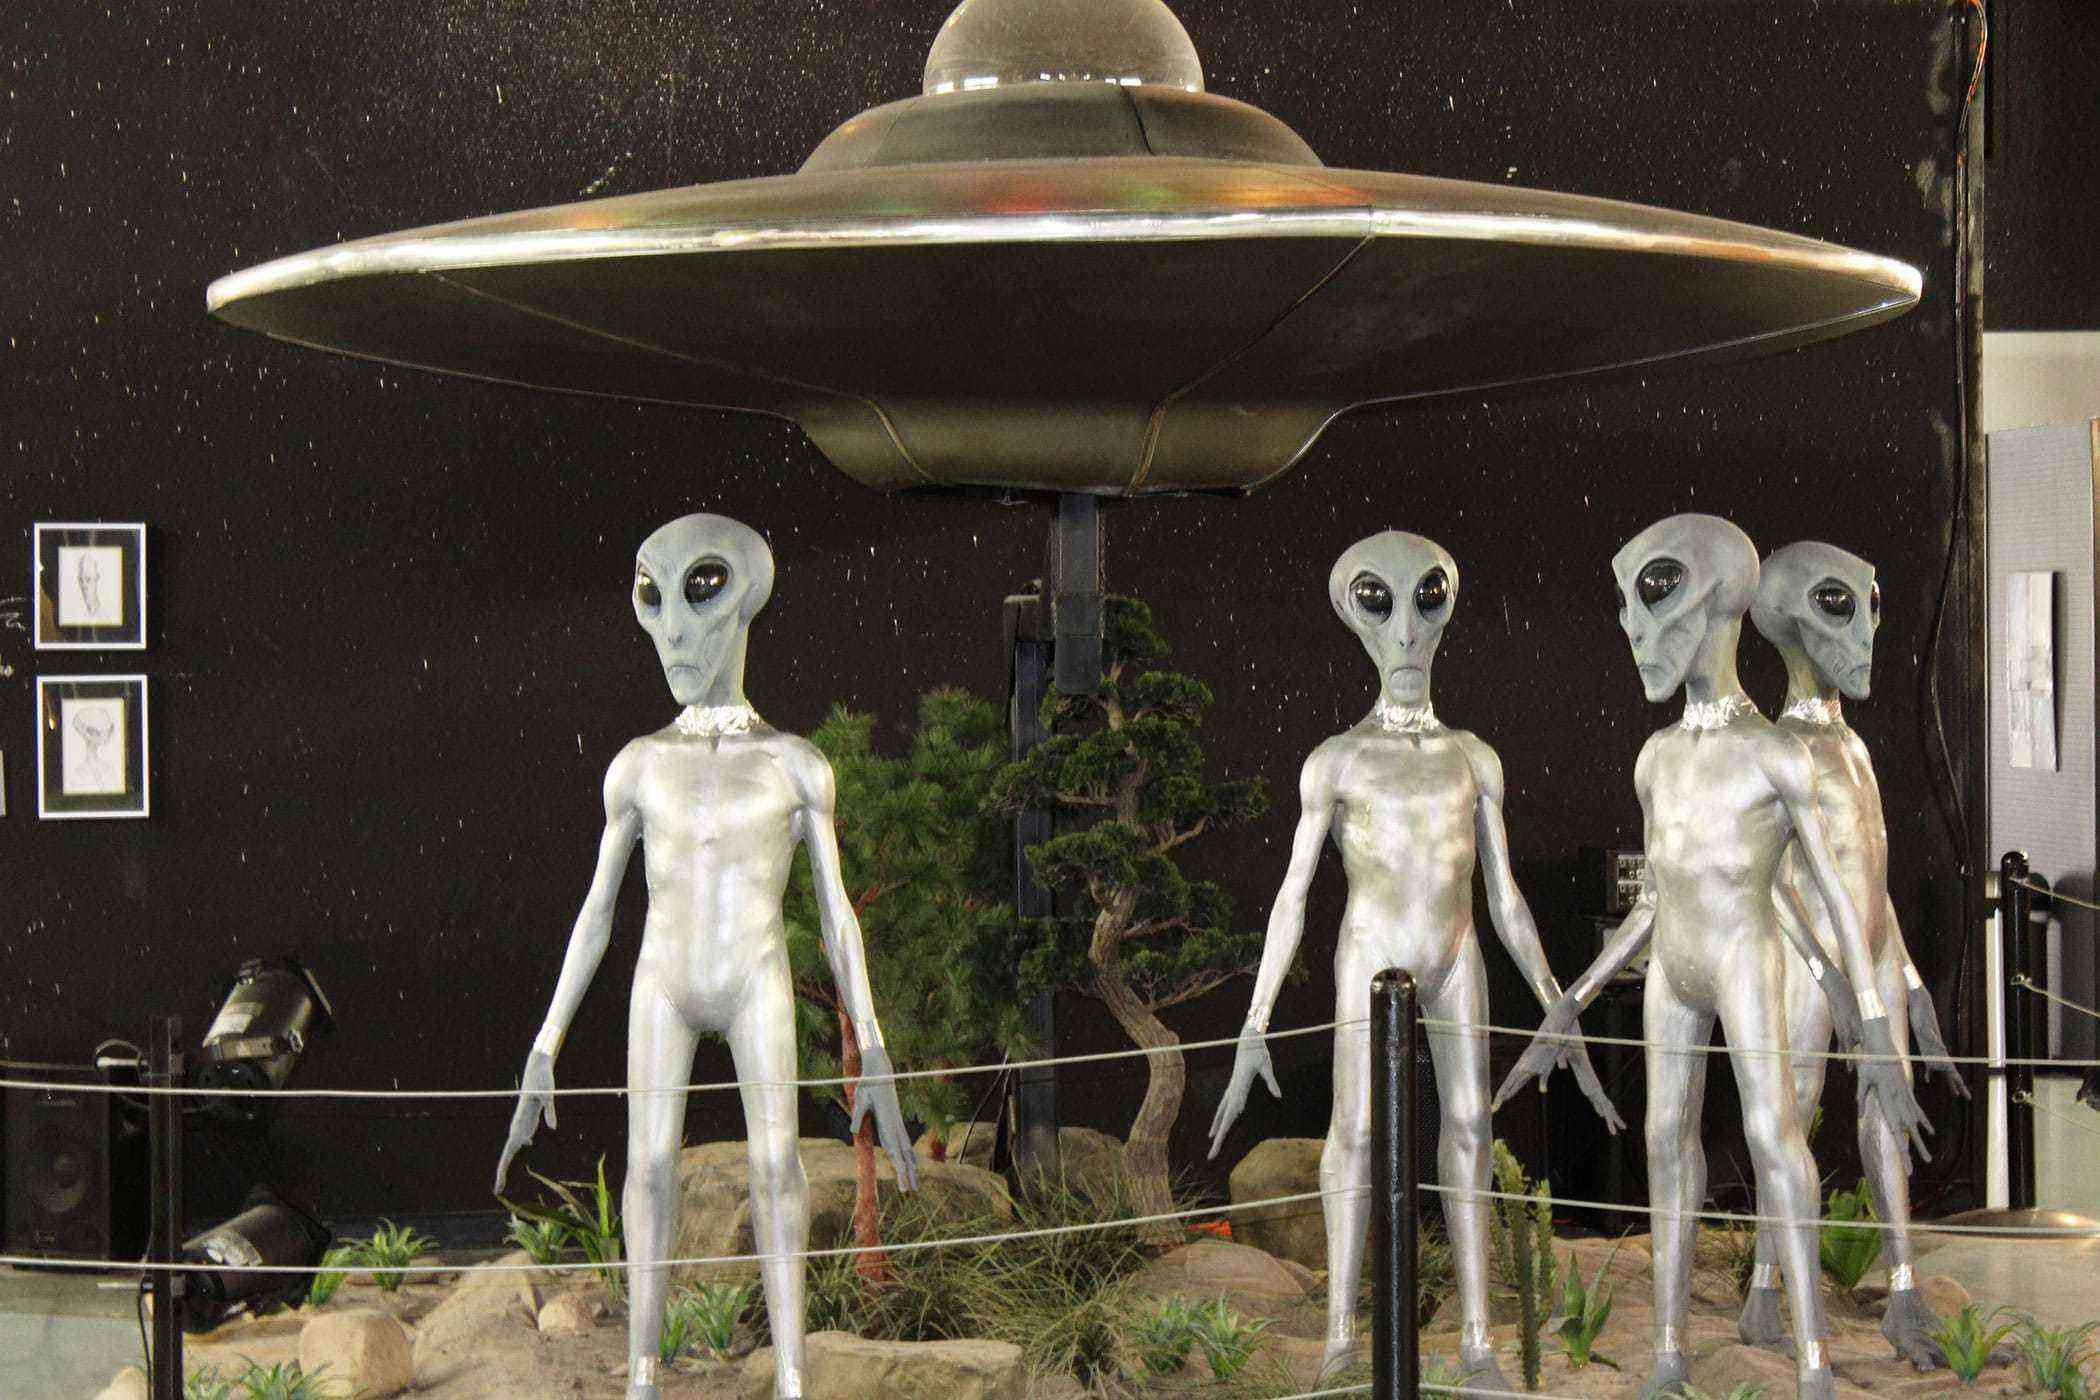 Quirky-Southwest-Museums-The-International-UFO-Museum-Research-Center